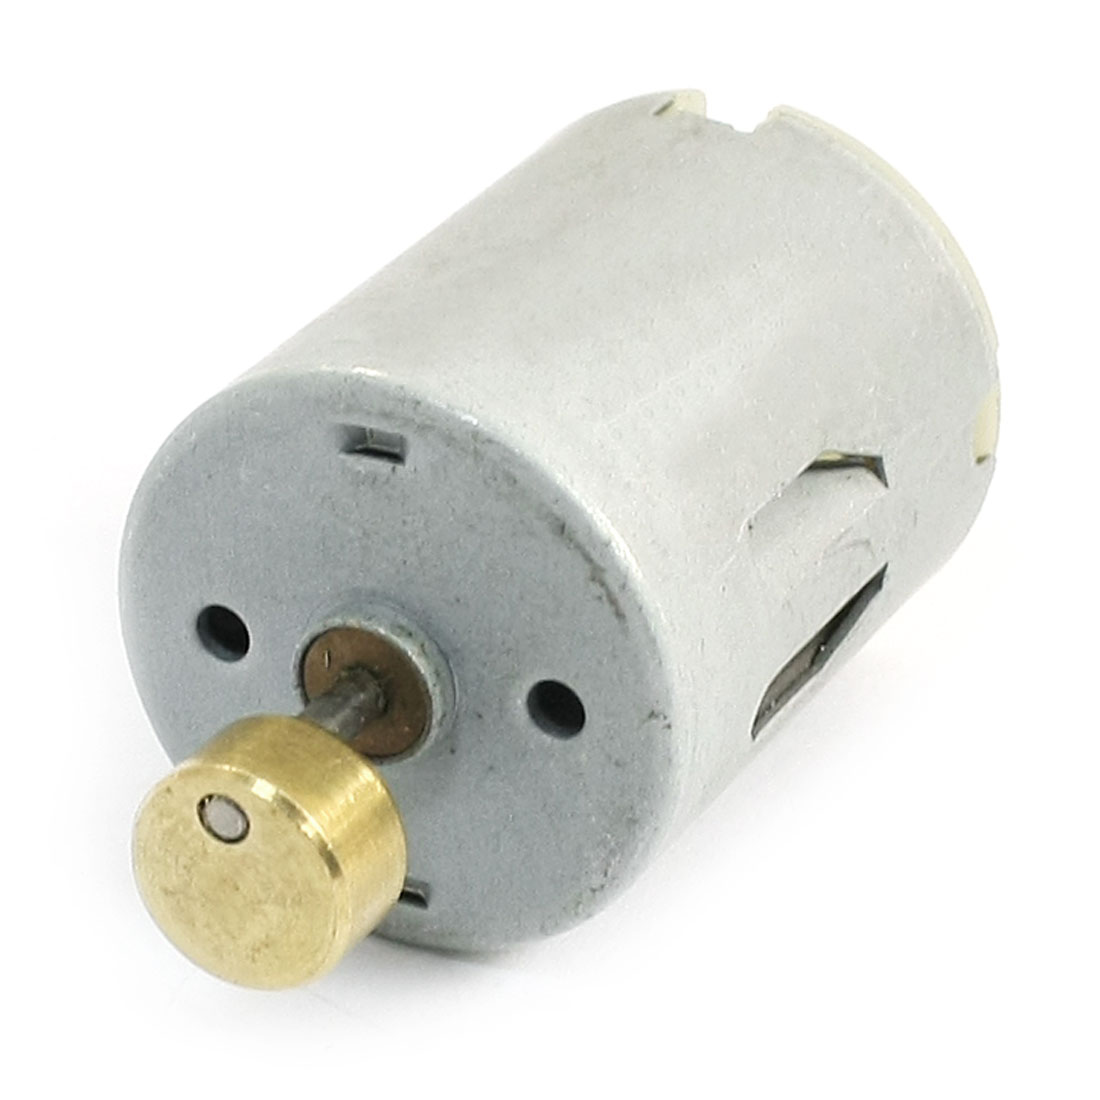 Spare-Part-6-12VDC-8000RPM-Vibrating-Vibration-Micro-Motor